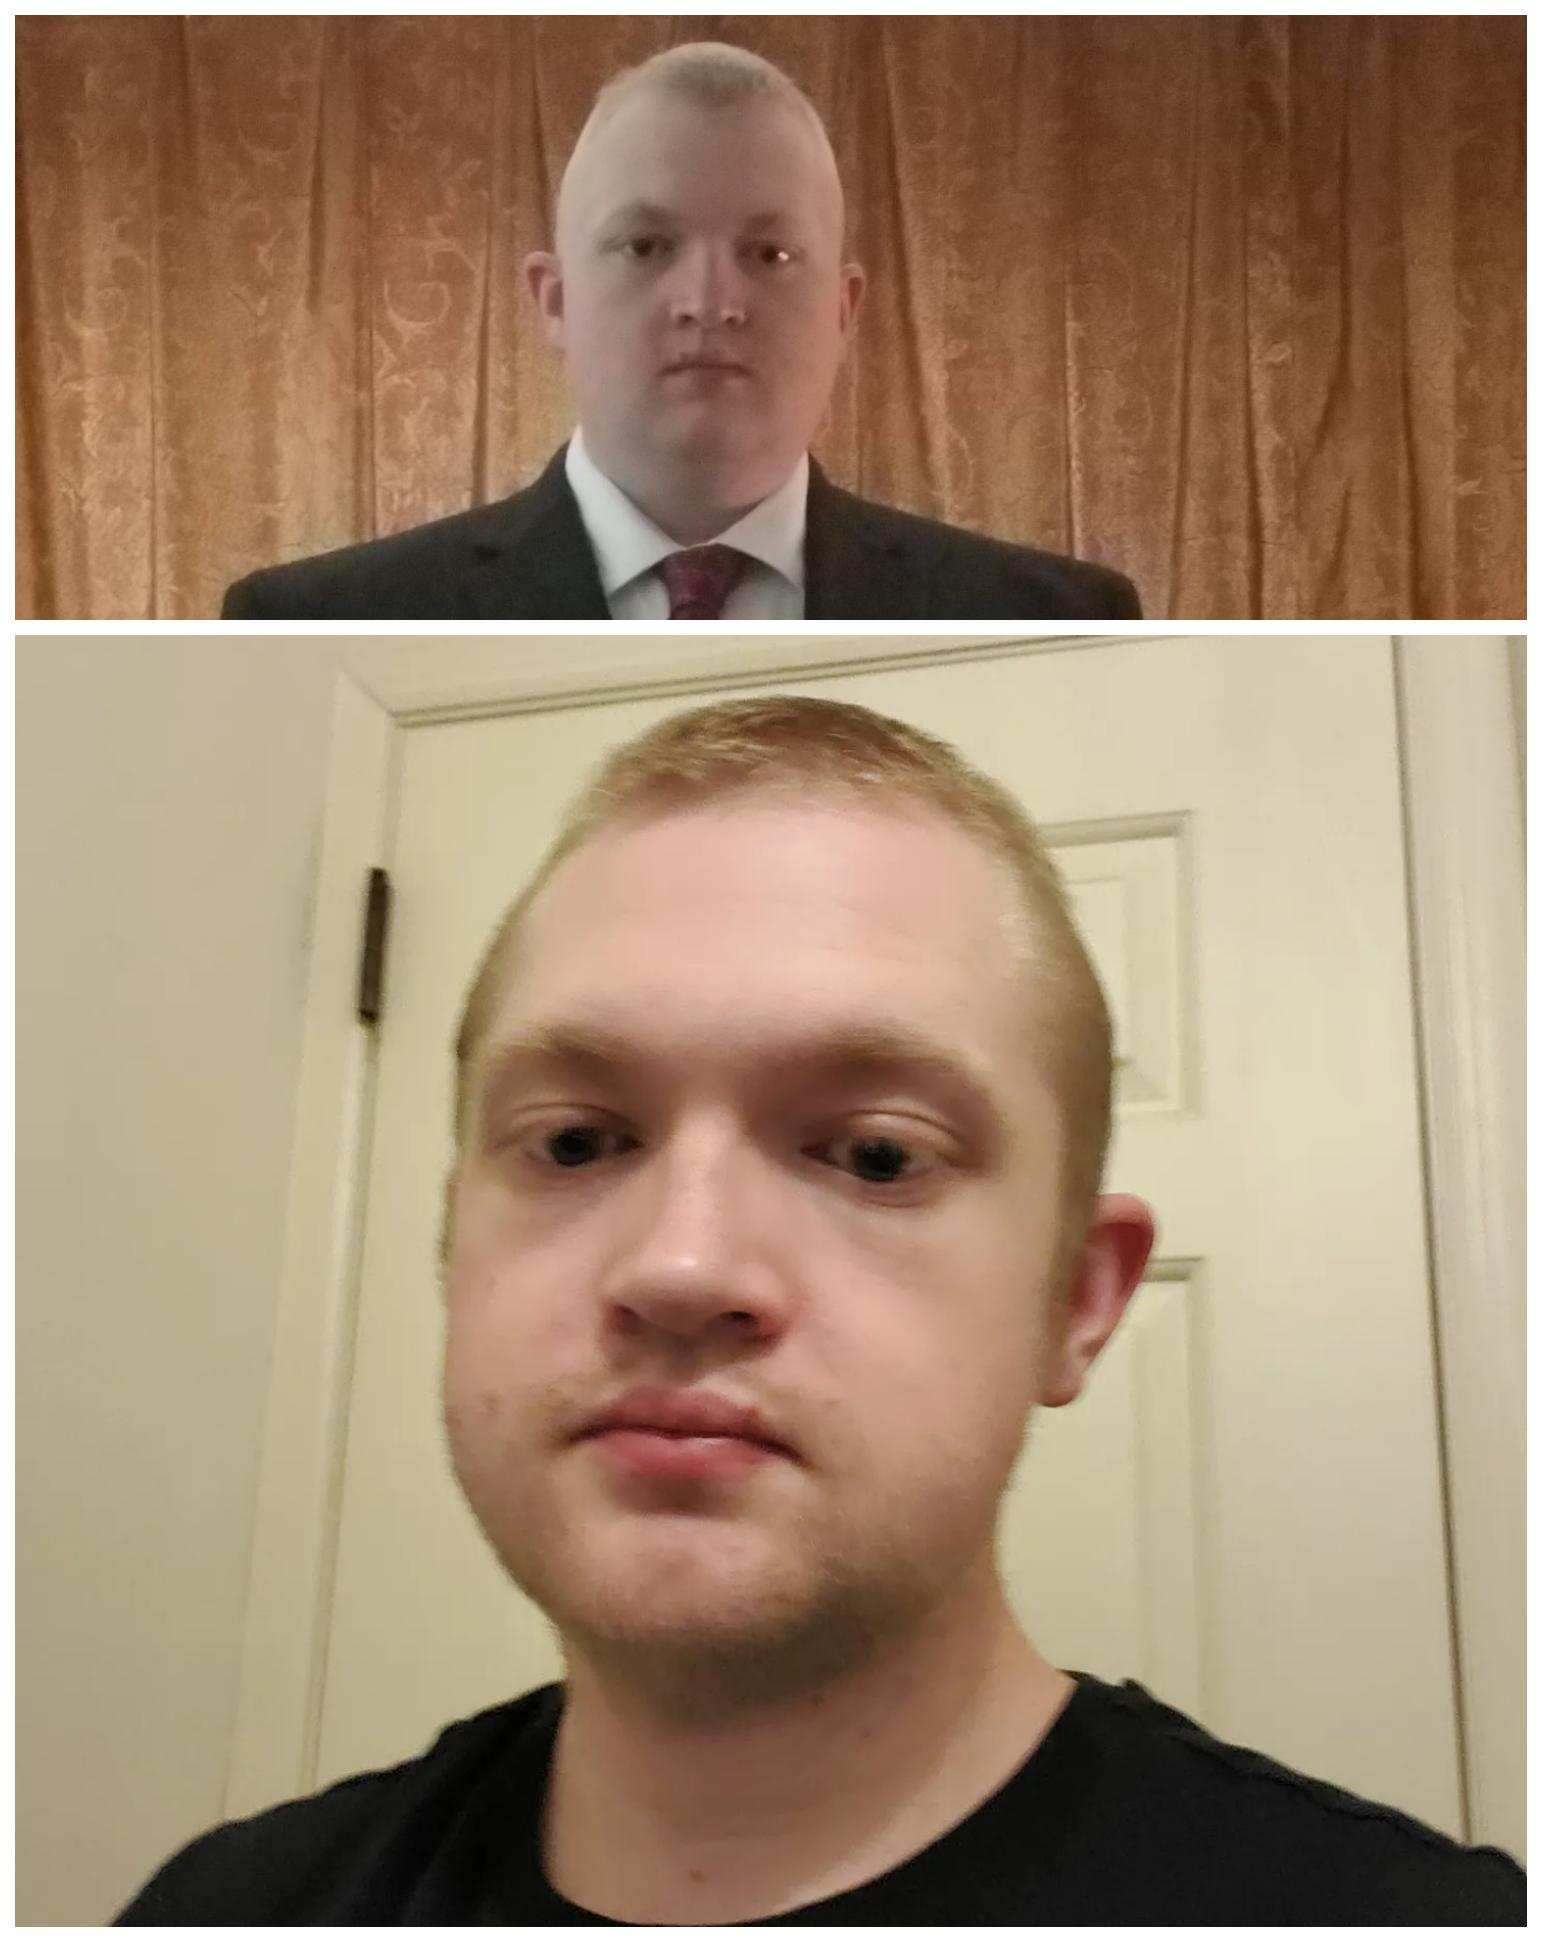 5'8 Male 81 lbs Weight Loss Before and After 270 lbs to 189 lbs